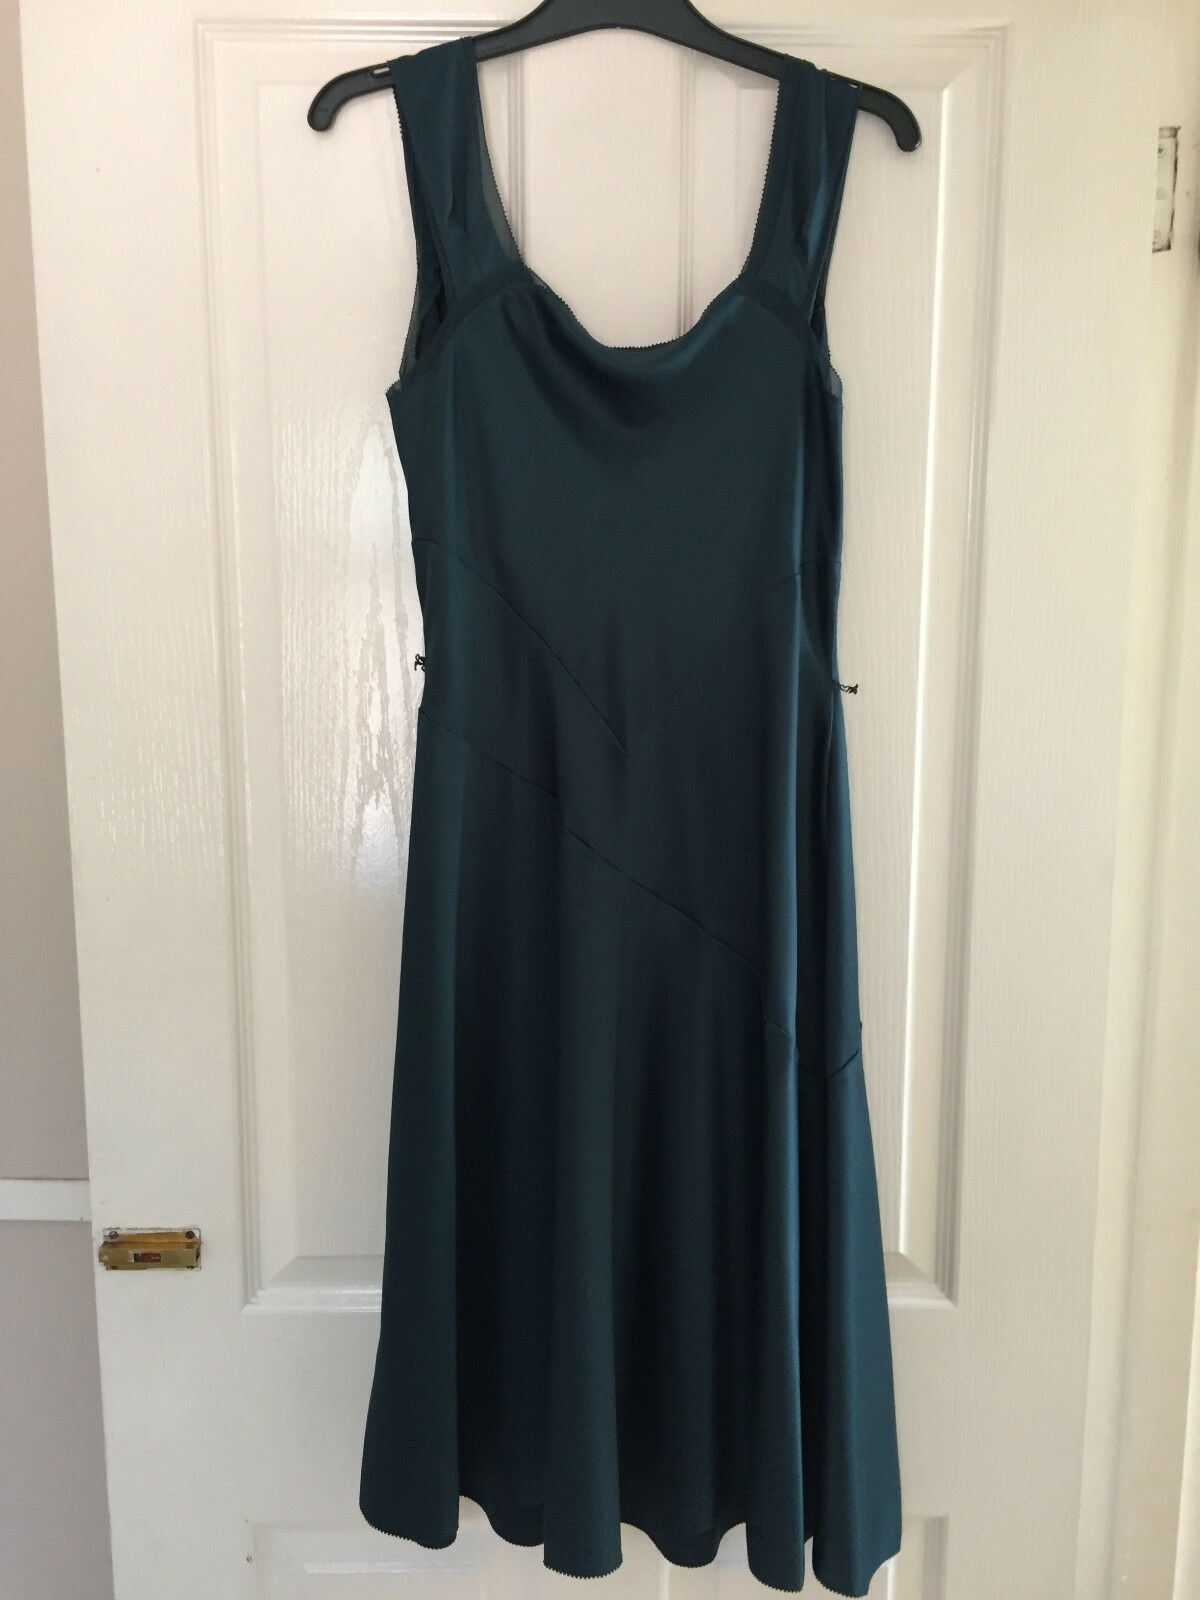 Gorgeous wrap over dress by Elements Amanda Wakeley size 12